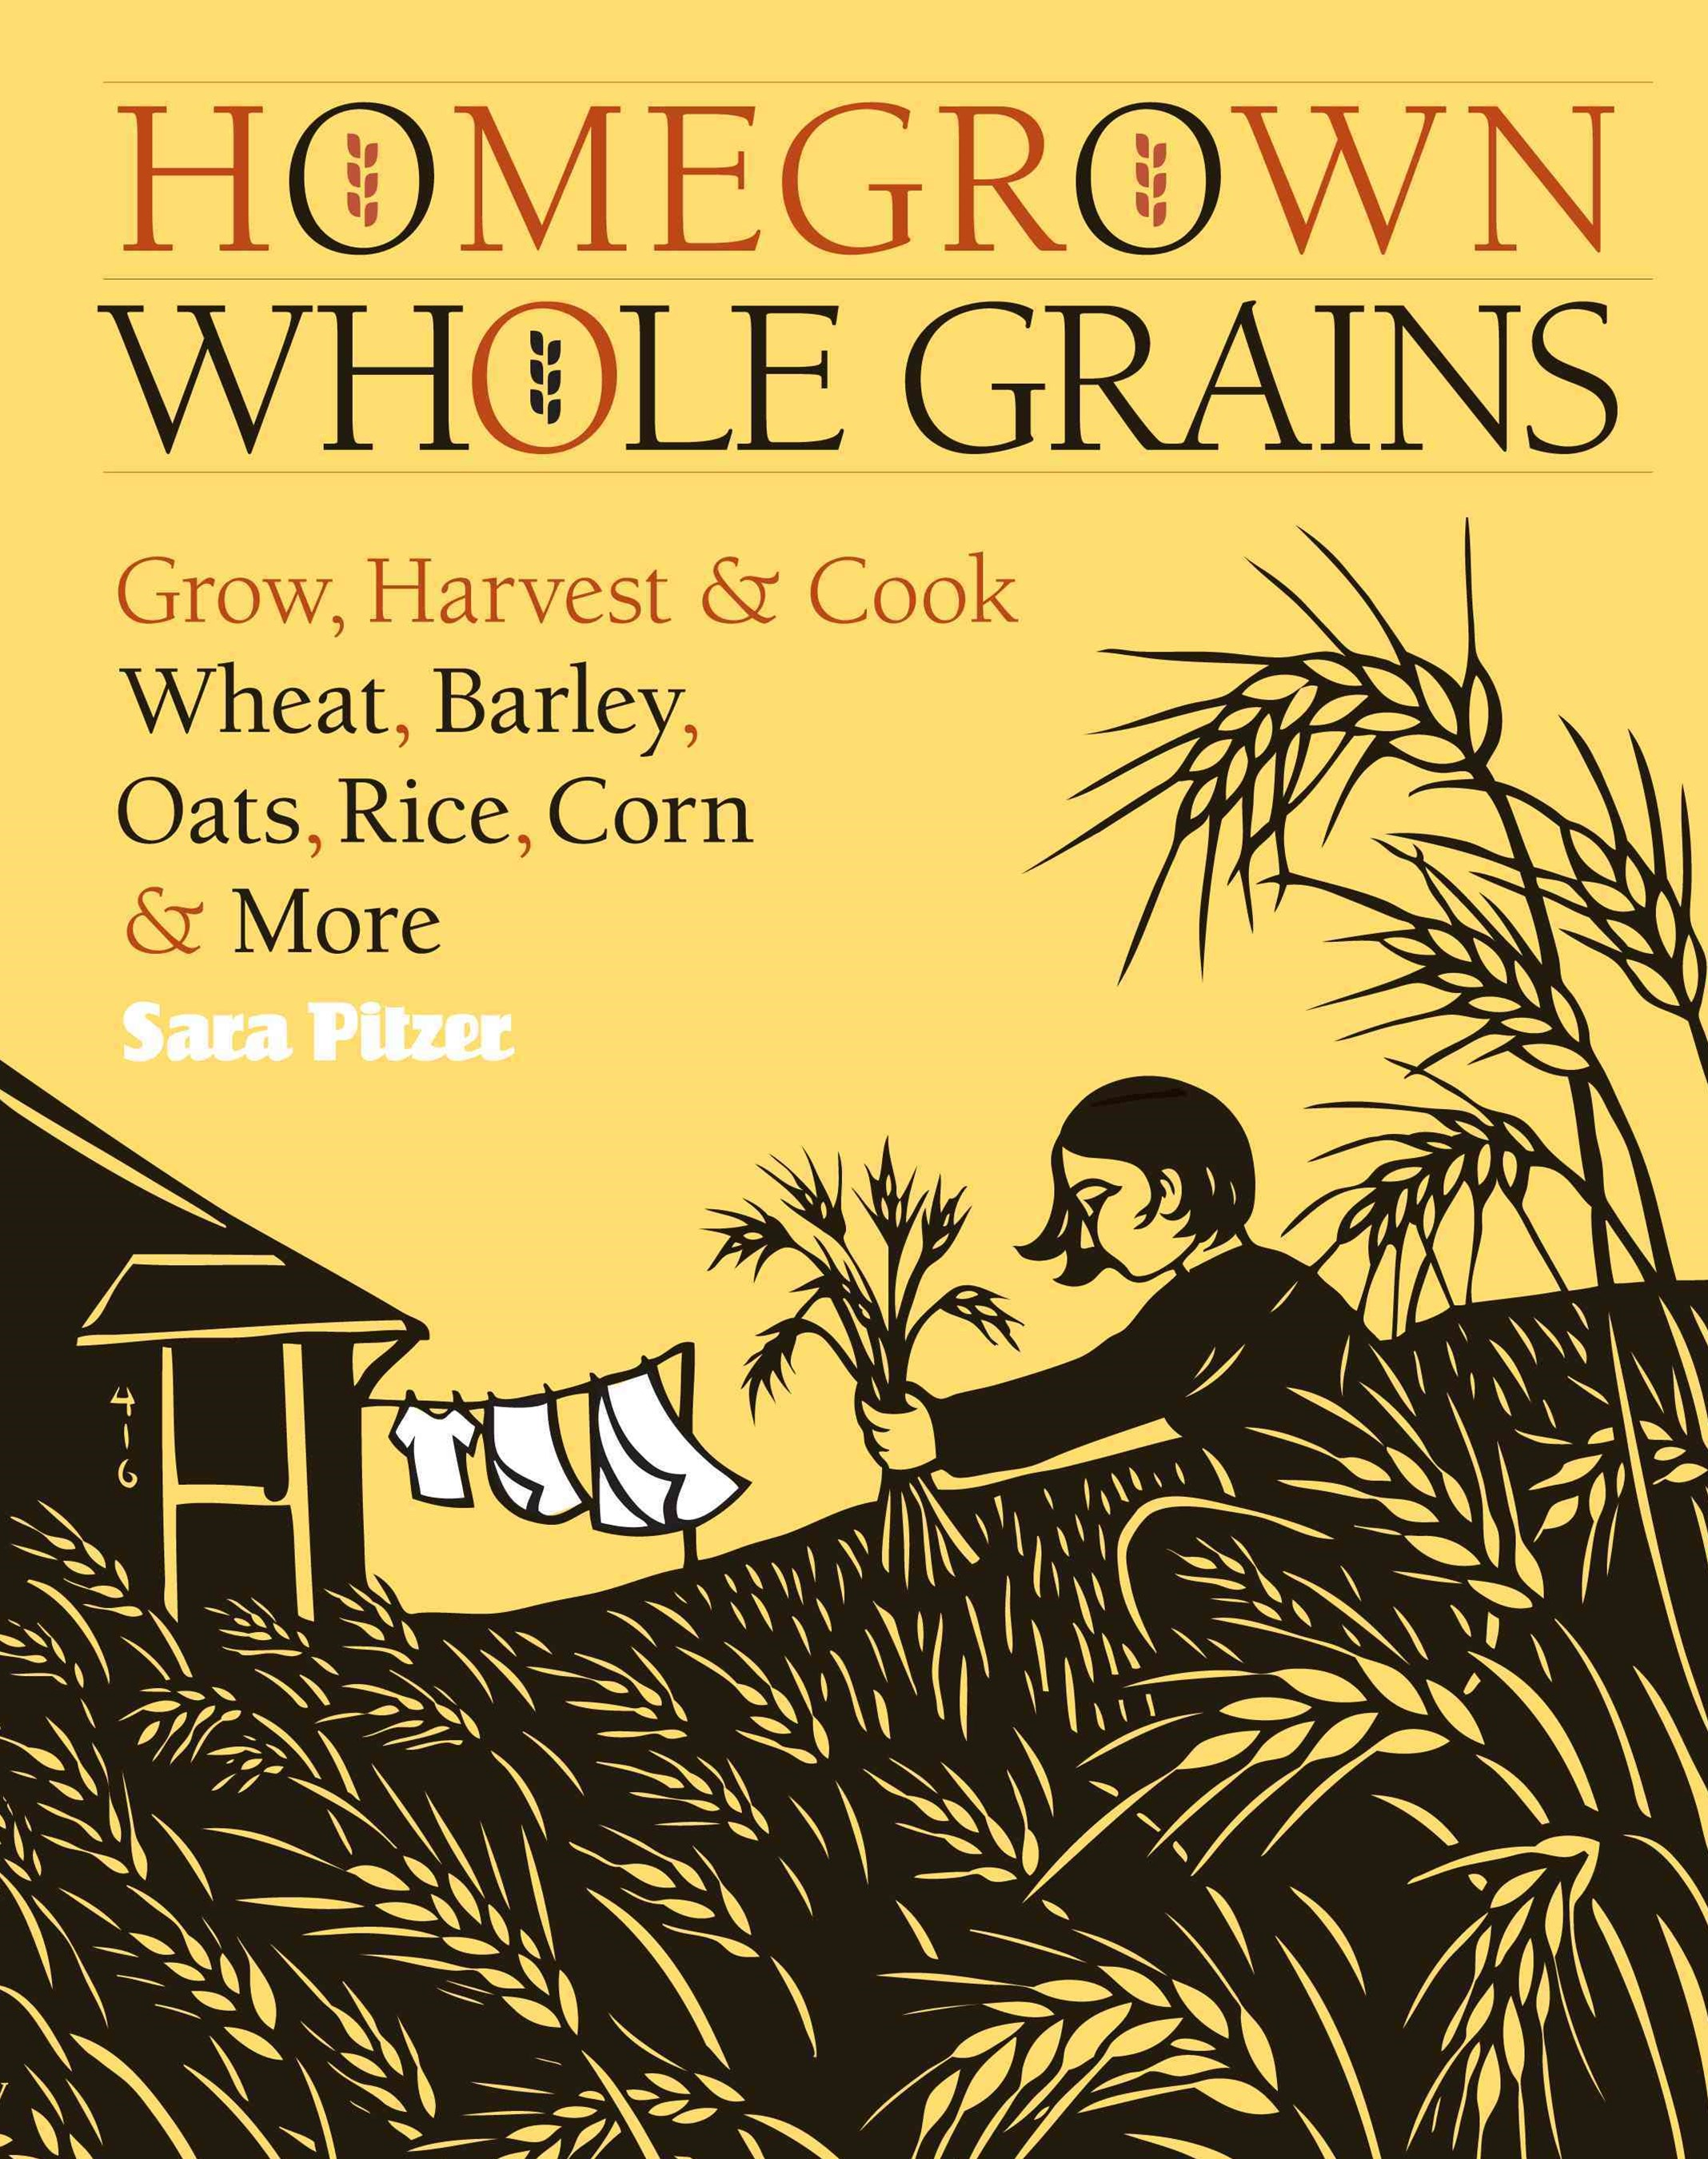 Homegrown Whole Grains